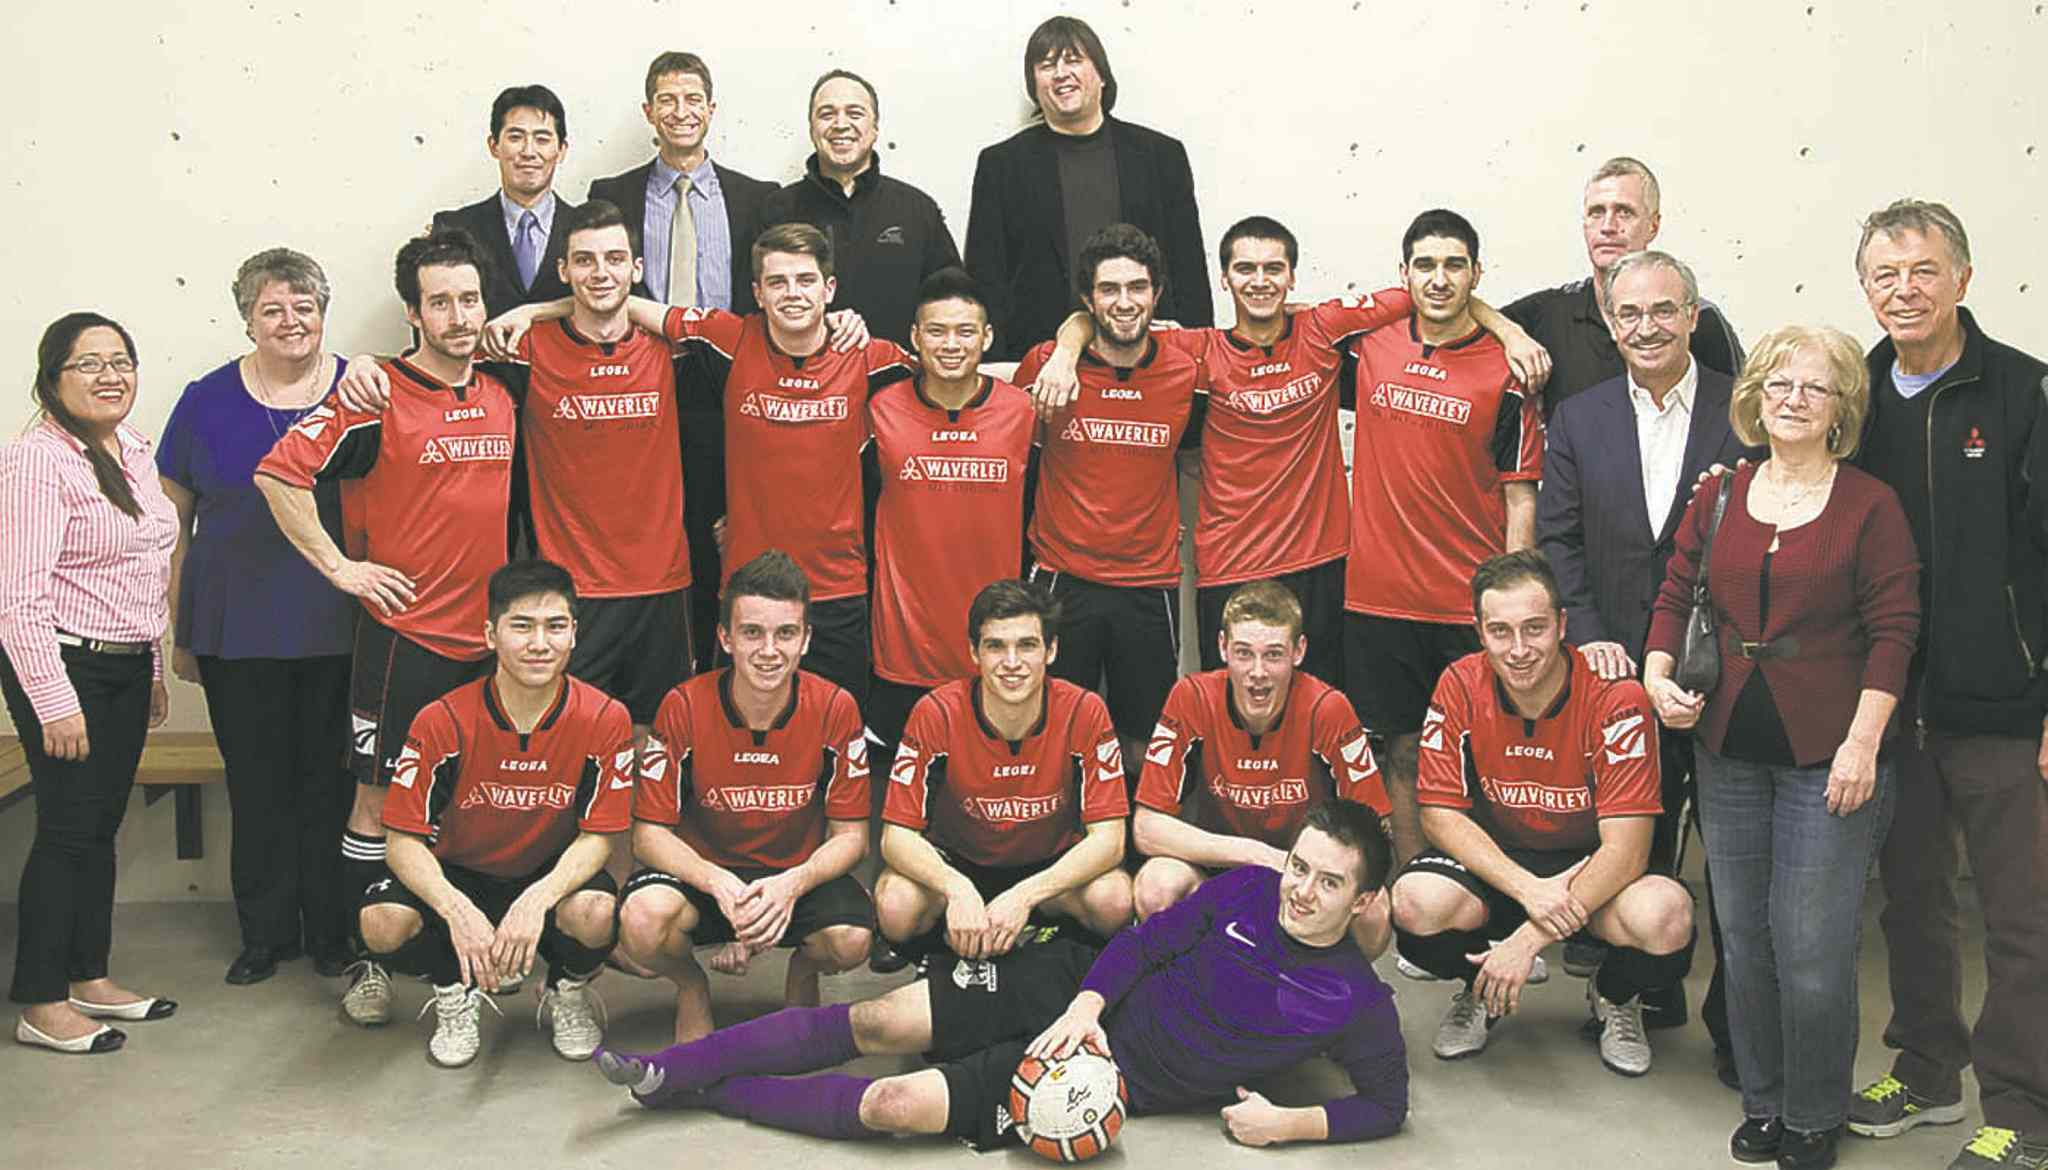 Waverley Mitsubishi's men's soccer team, with (top left)  Mitsubishi Canada President Kenichiro Yamamoto, Waverley Mitsubishi President Rino Attardo, Service Operations Manager and Parts Manager Kirk Christodoulides and Robert Maskiew; 2nd row: Waverley Mitsubishi administrative assistant Lee Holgado and Controller Denise Gustafson, Head coach Rudy Hartfiel, Vickar Automotive Group President Larry Vickar and parents of Rino Attardo, Al and Marie Attardo.